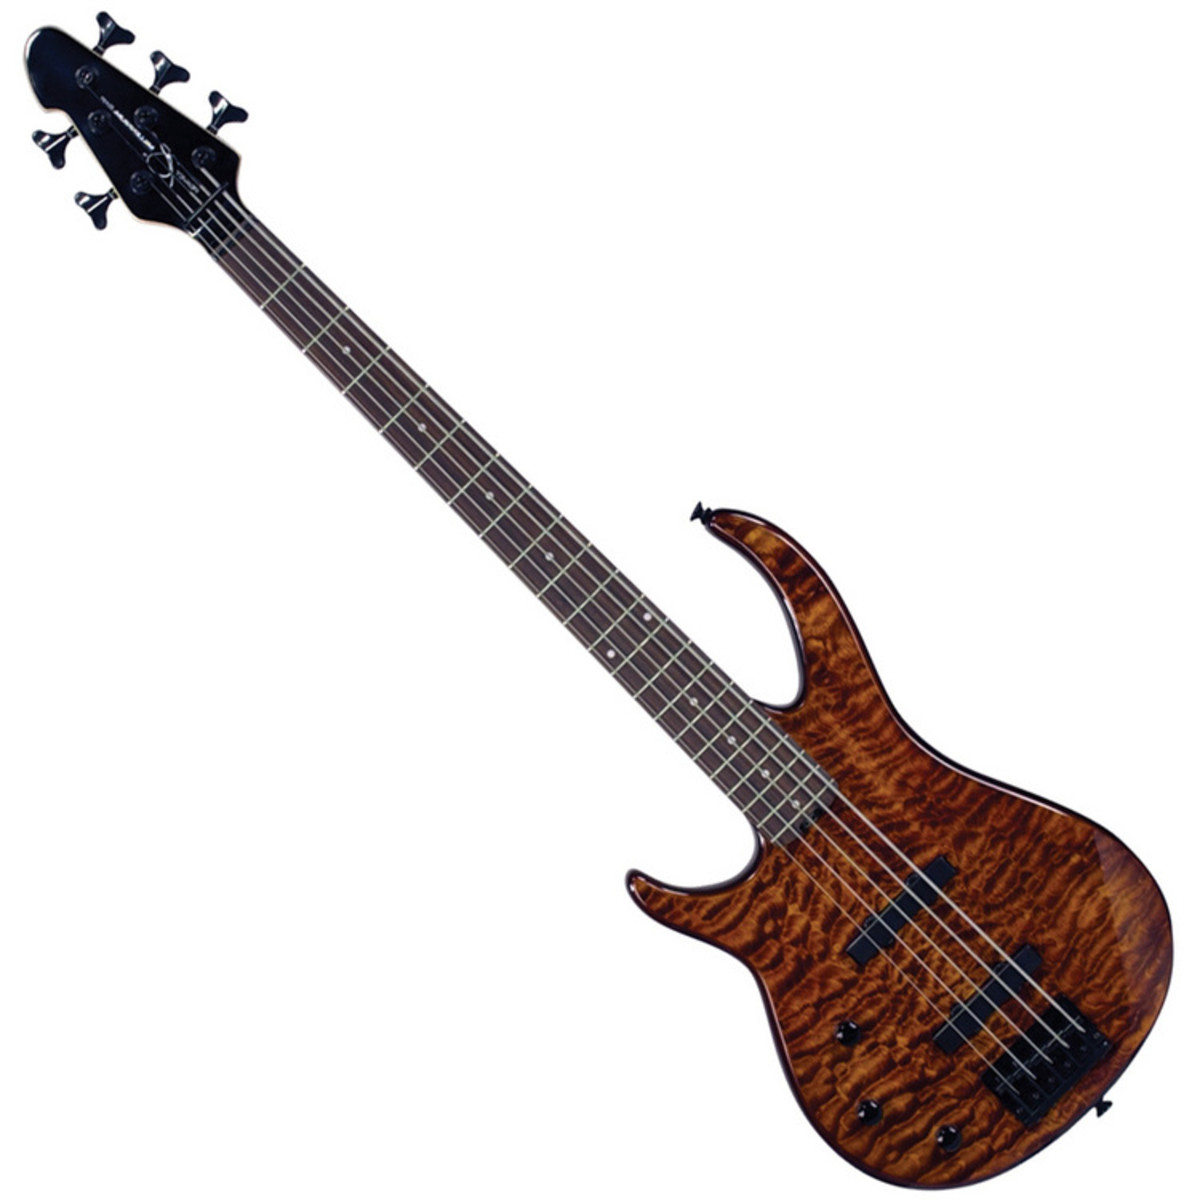 Peavey Millennium Bass : peavey millennium bxp 5 string bass guitar l h tiger eye used at ~ Hamham.info Haus und Dekorationen